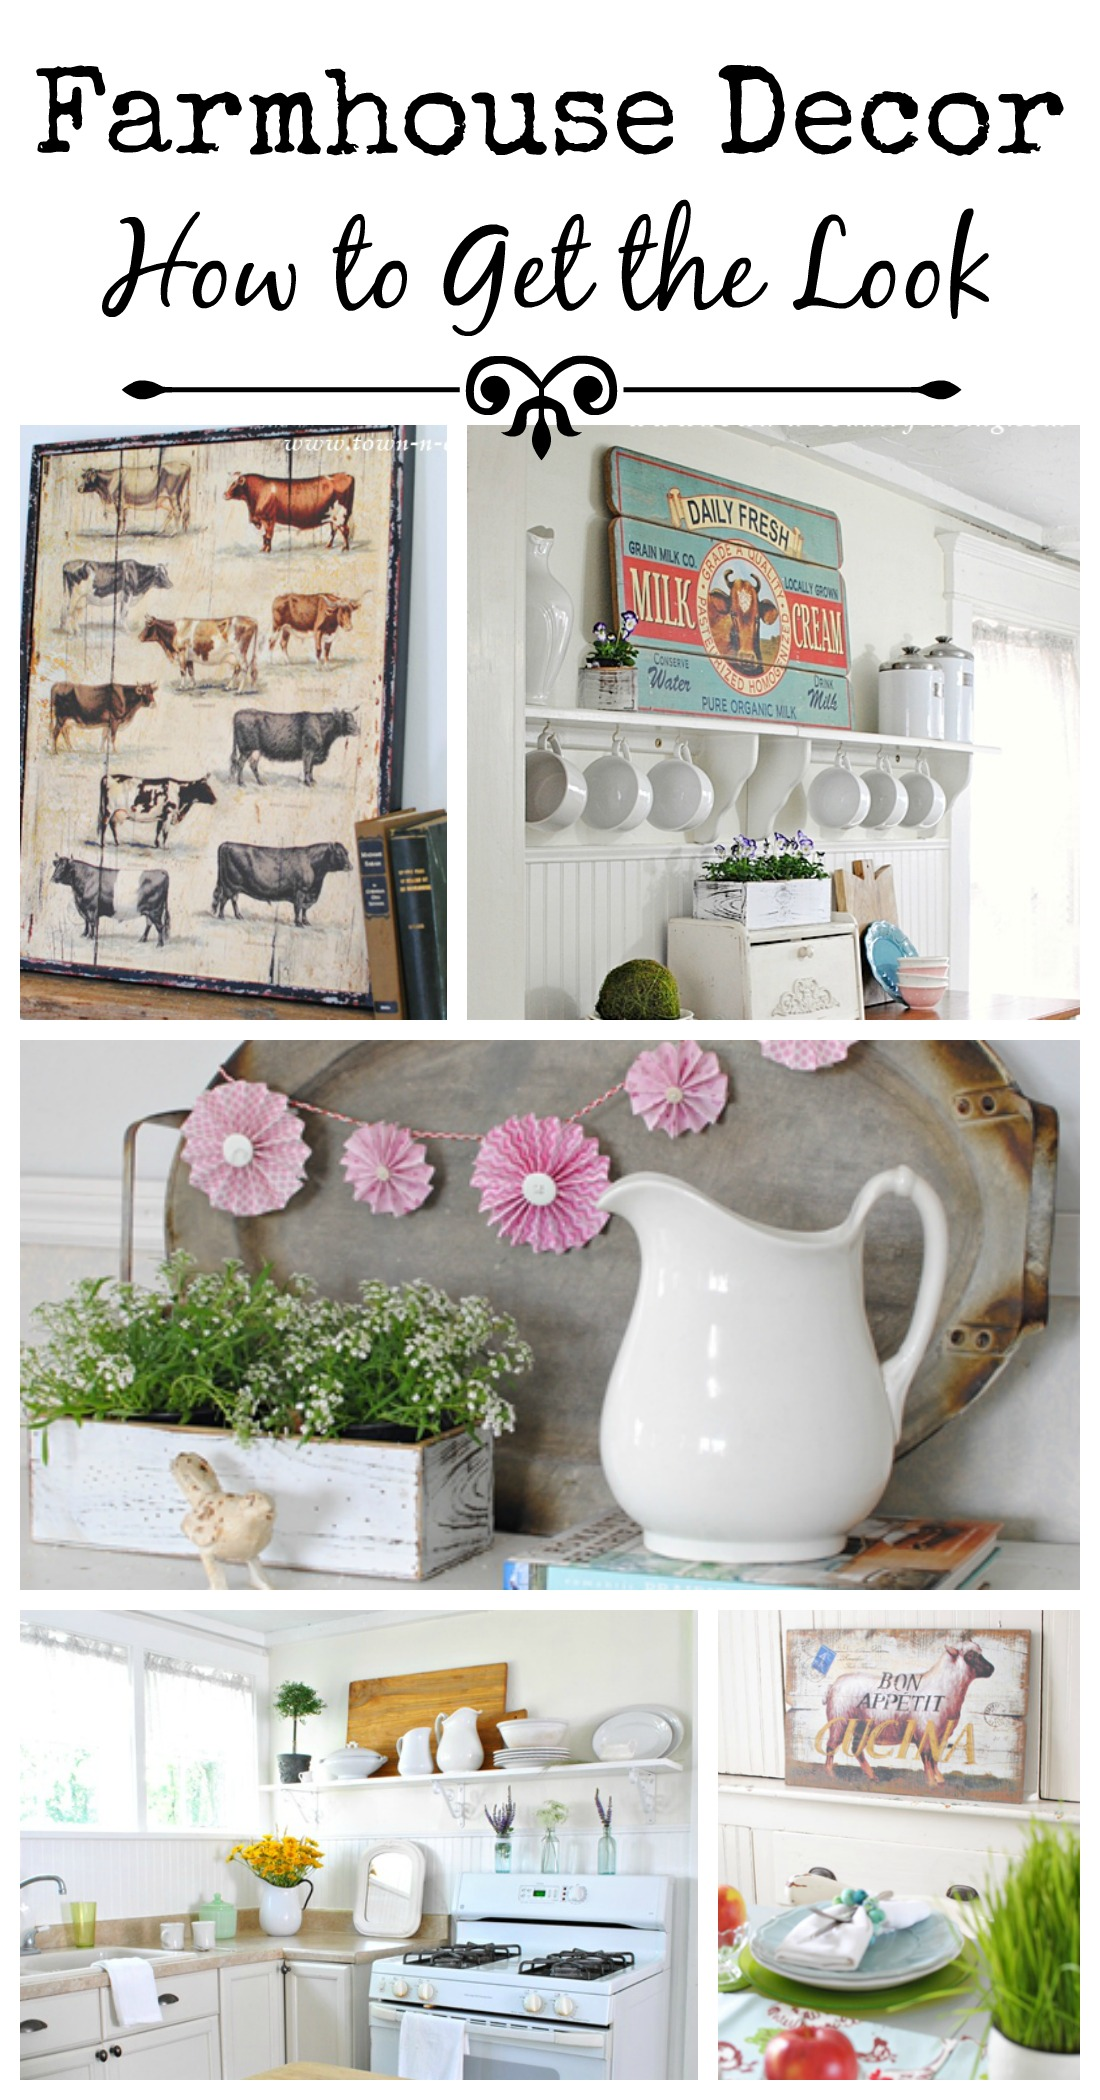 Country Farmhouse Style Decorating : Farmhouse Decor from hwiki.us size 1100 x 2100 jpeg 459kB